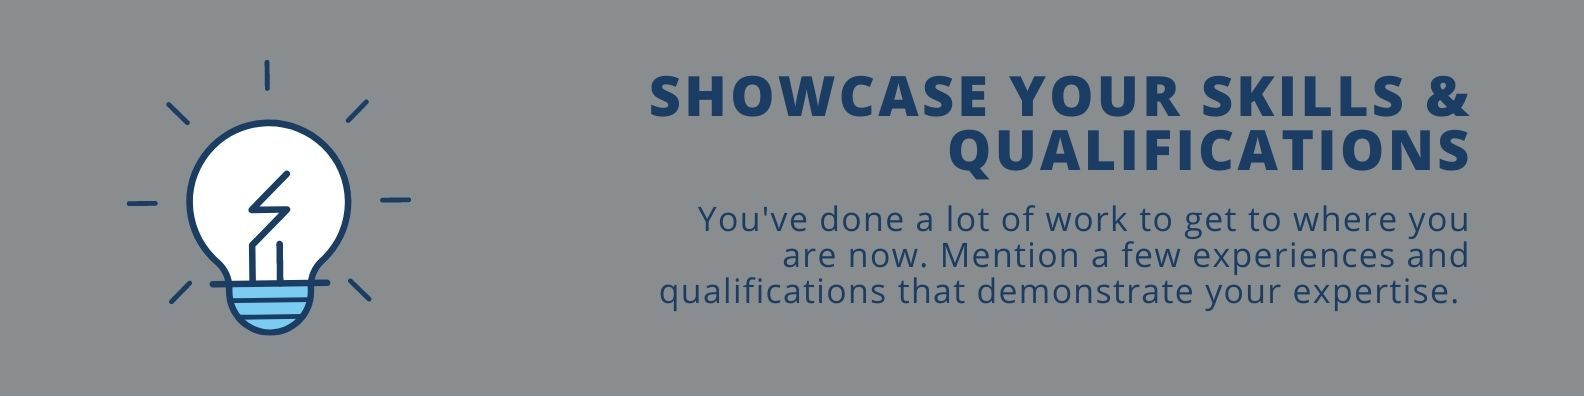 Showcase Your Skills and Qualifications